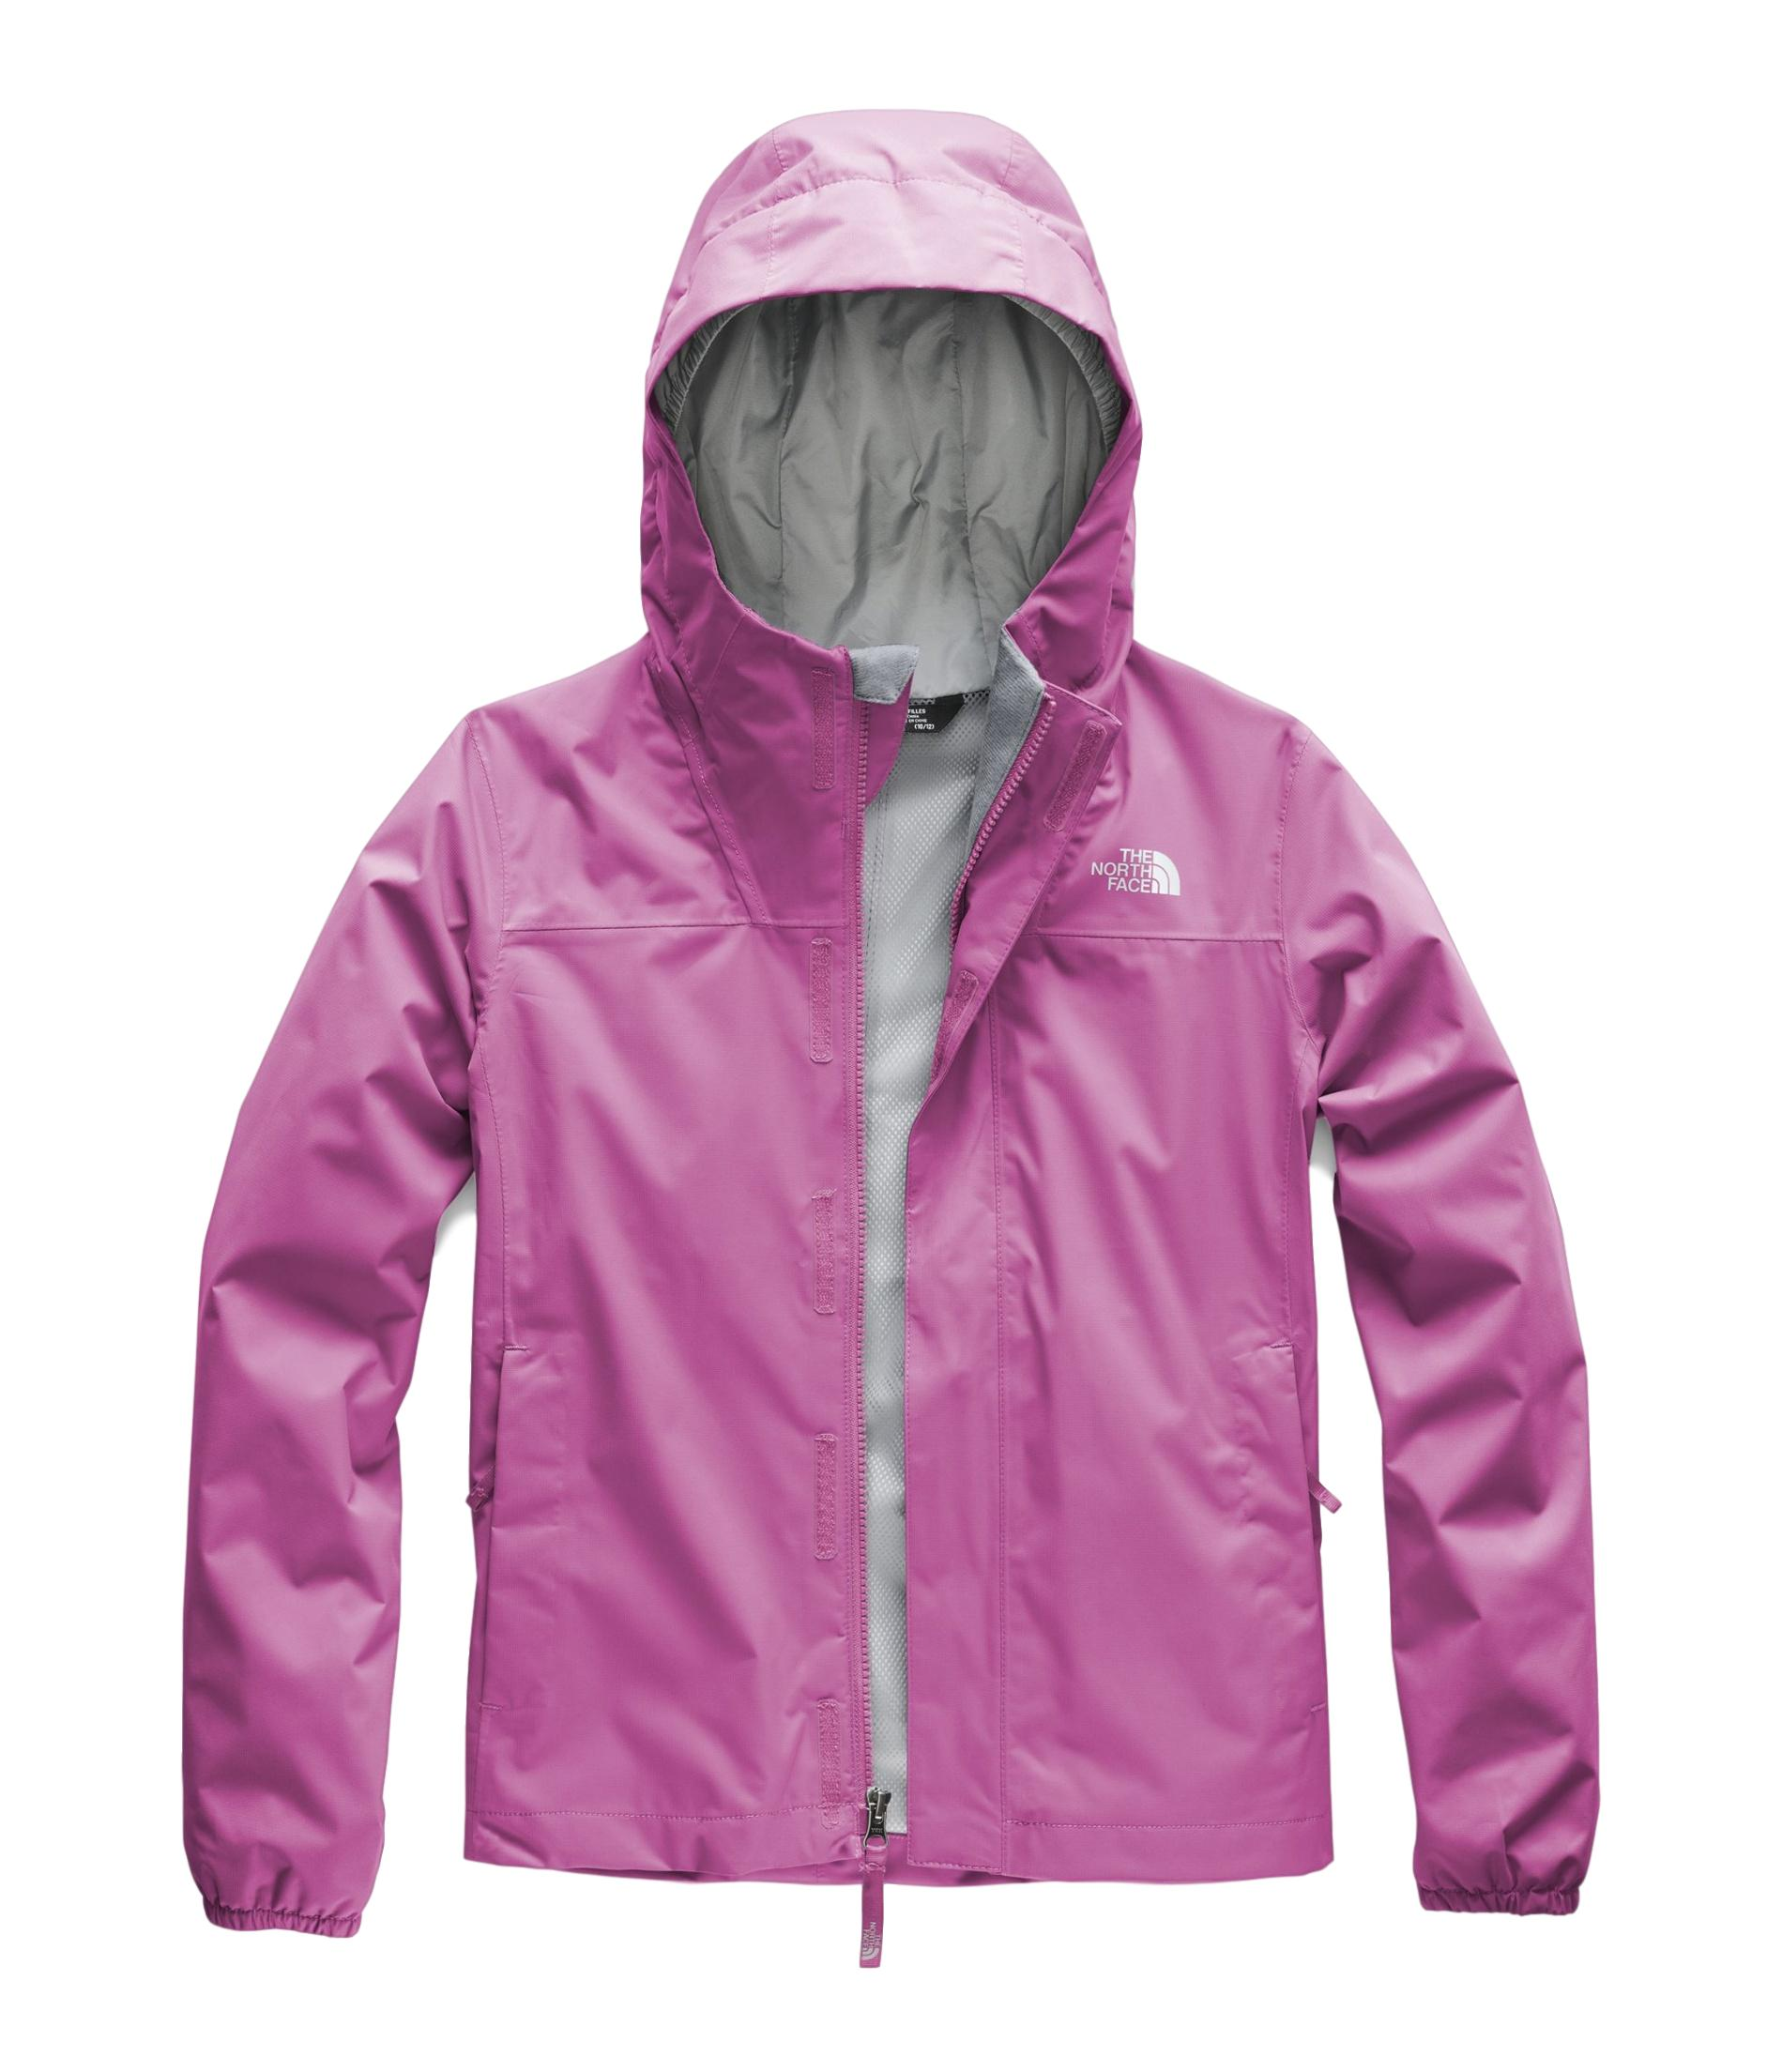 dce4aaf31 The North Face Girls Resolve Reflective Jacket - Kids